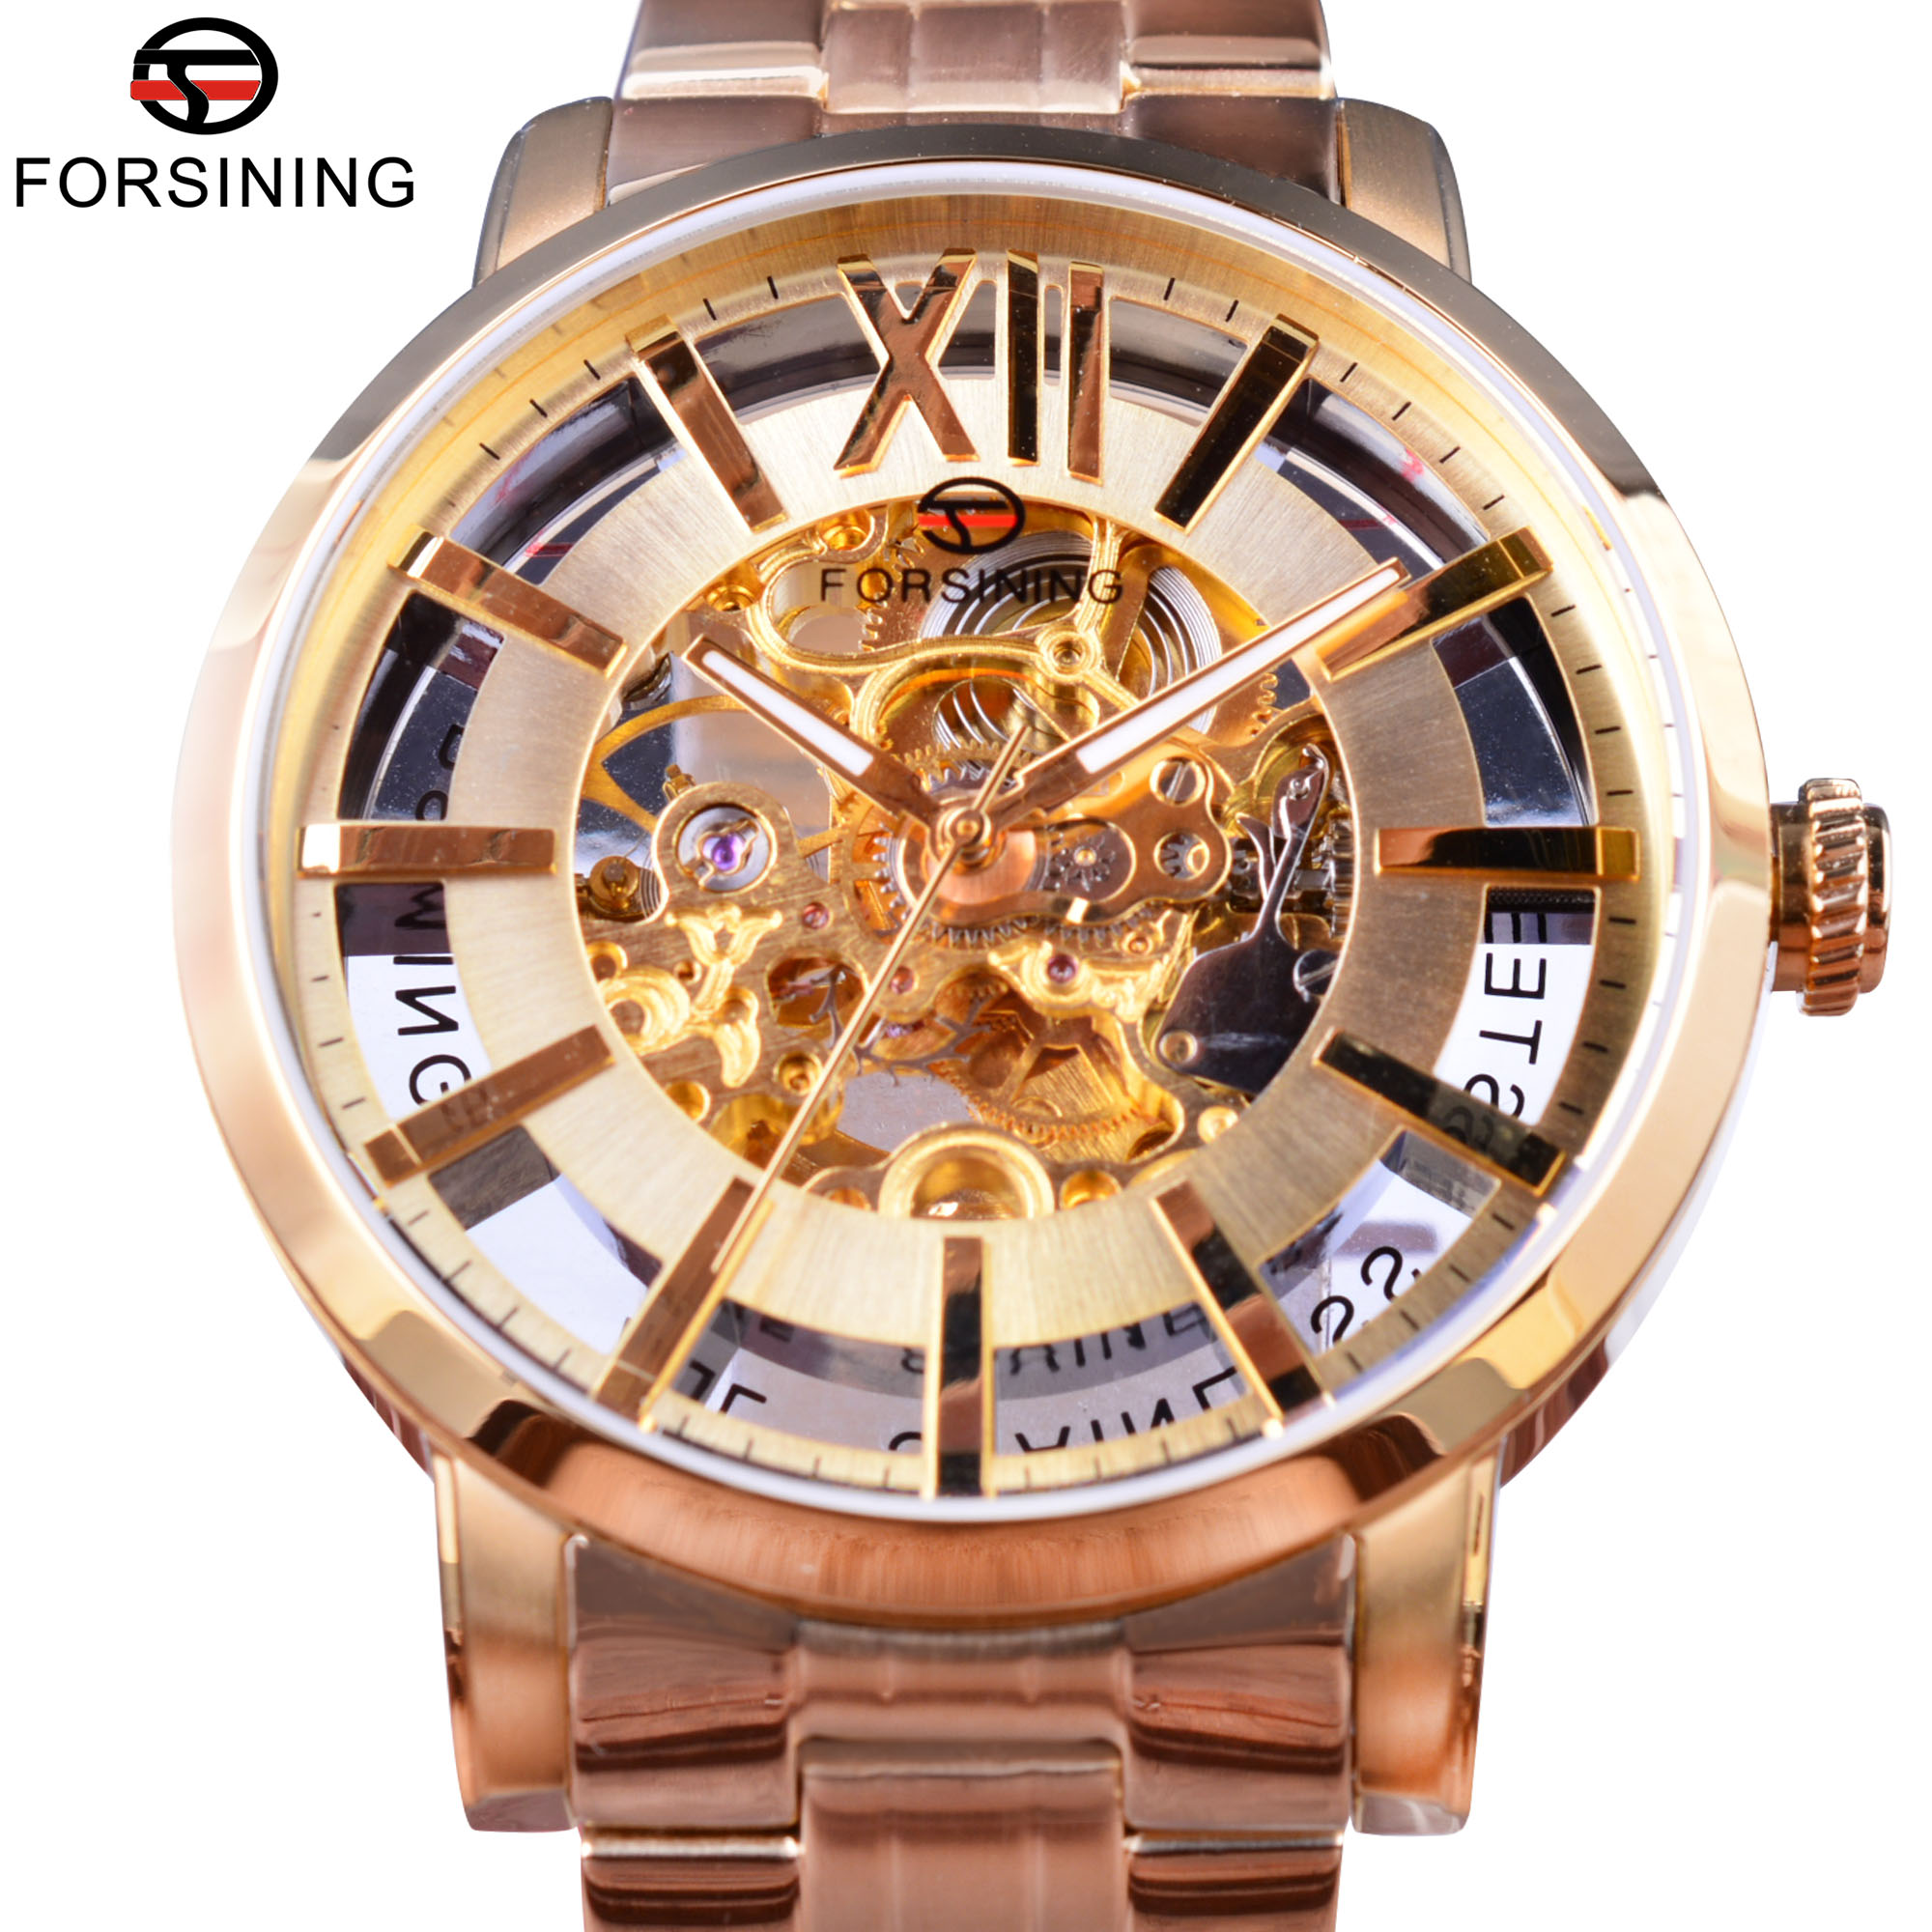 Forsining Transparent Golden Fashion Style 316 Steel Waterproof Sapphire Crystal Men Automatic Skeleton Watches Top Brand Luxury forsining 3d skeleton twisting design golden movement inside transparent case mens watches top brand luxury automatic watches